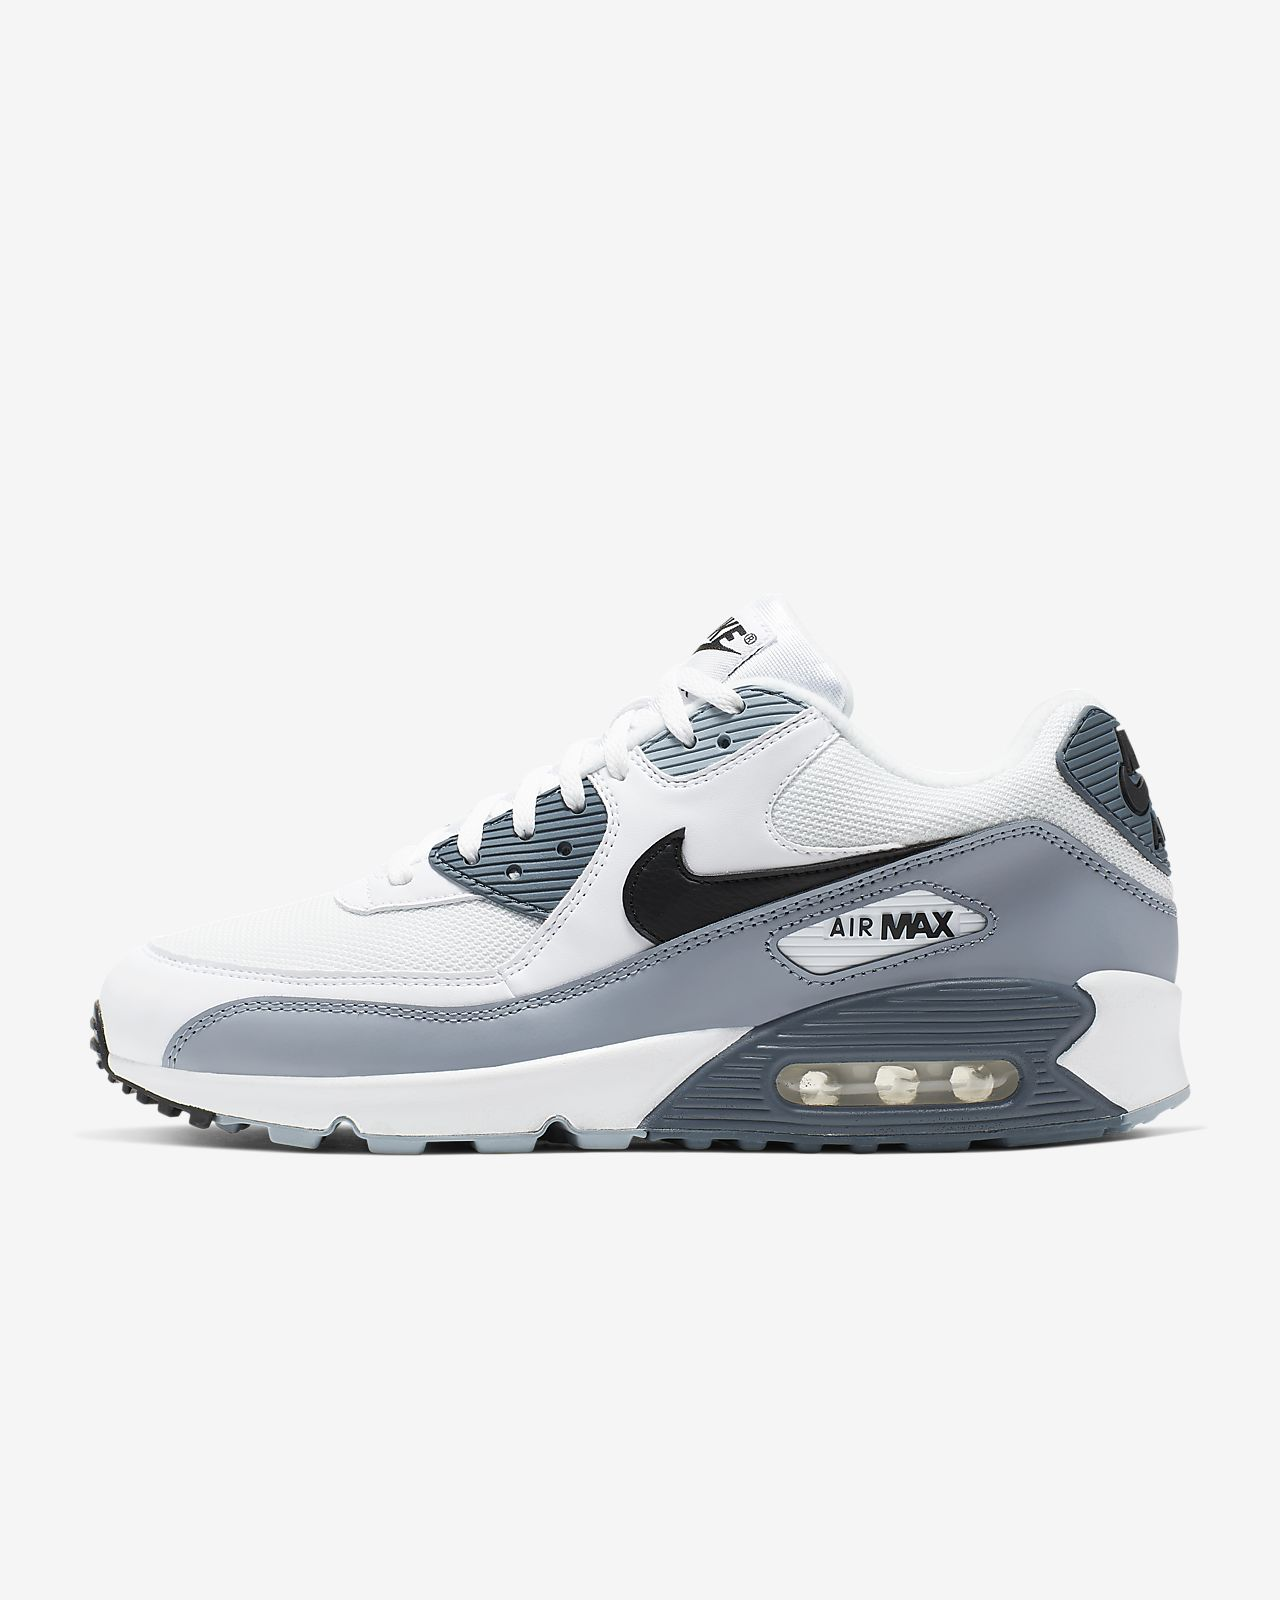 separation shoes c22d0 ddc62 ... Nike Air Max 90 Essential Men s Shoe